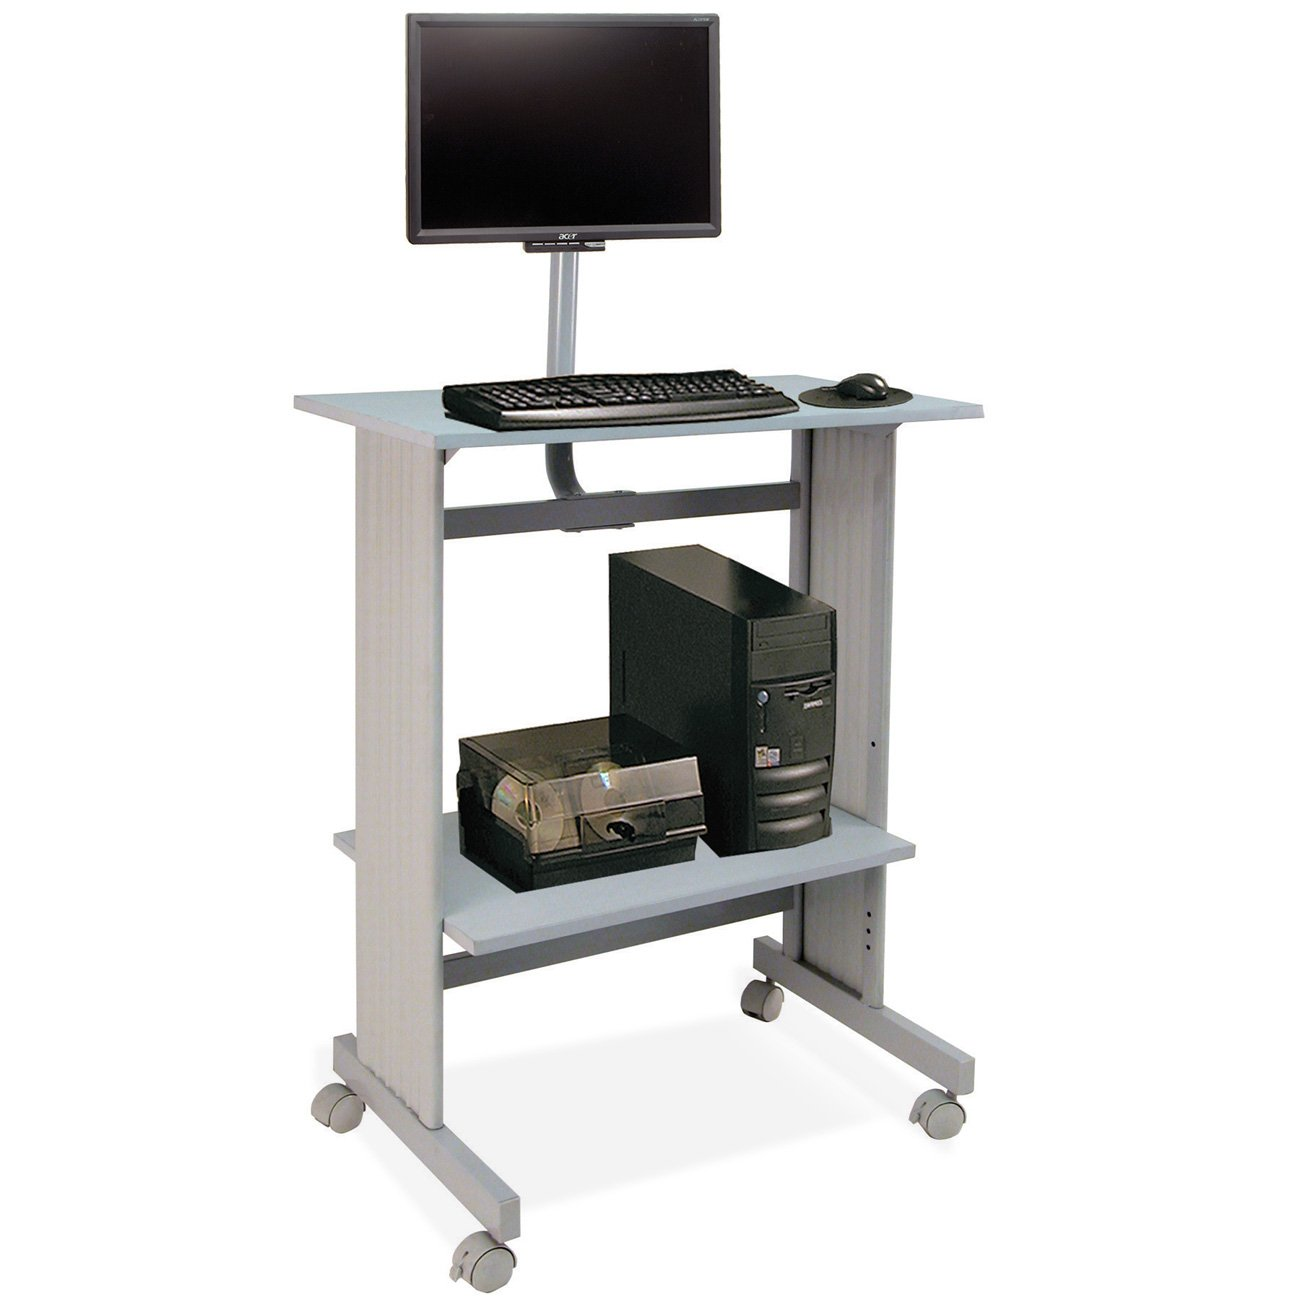 amazoncom buddy products stand up height workstation with lcd mount 20 x 56 x 29 inches gray monitor mounts office products - Standing Computer Desk